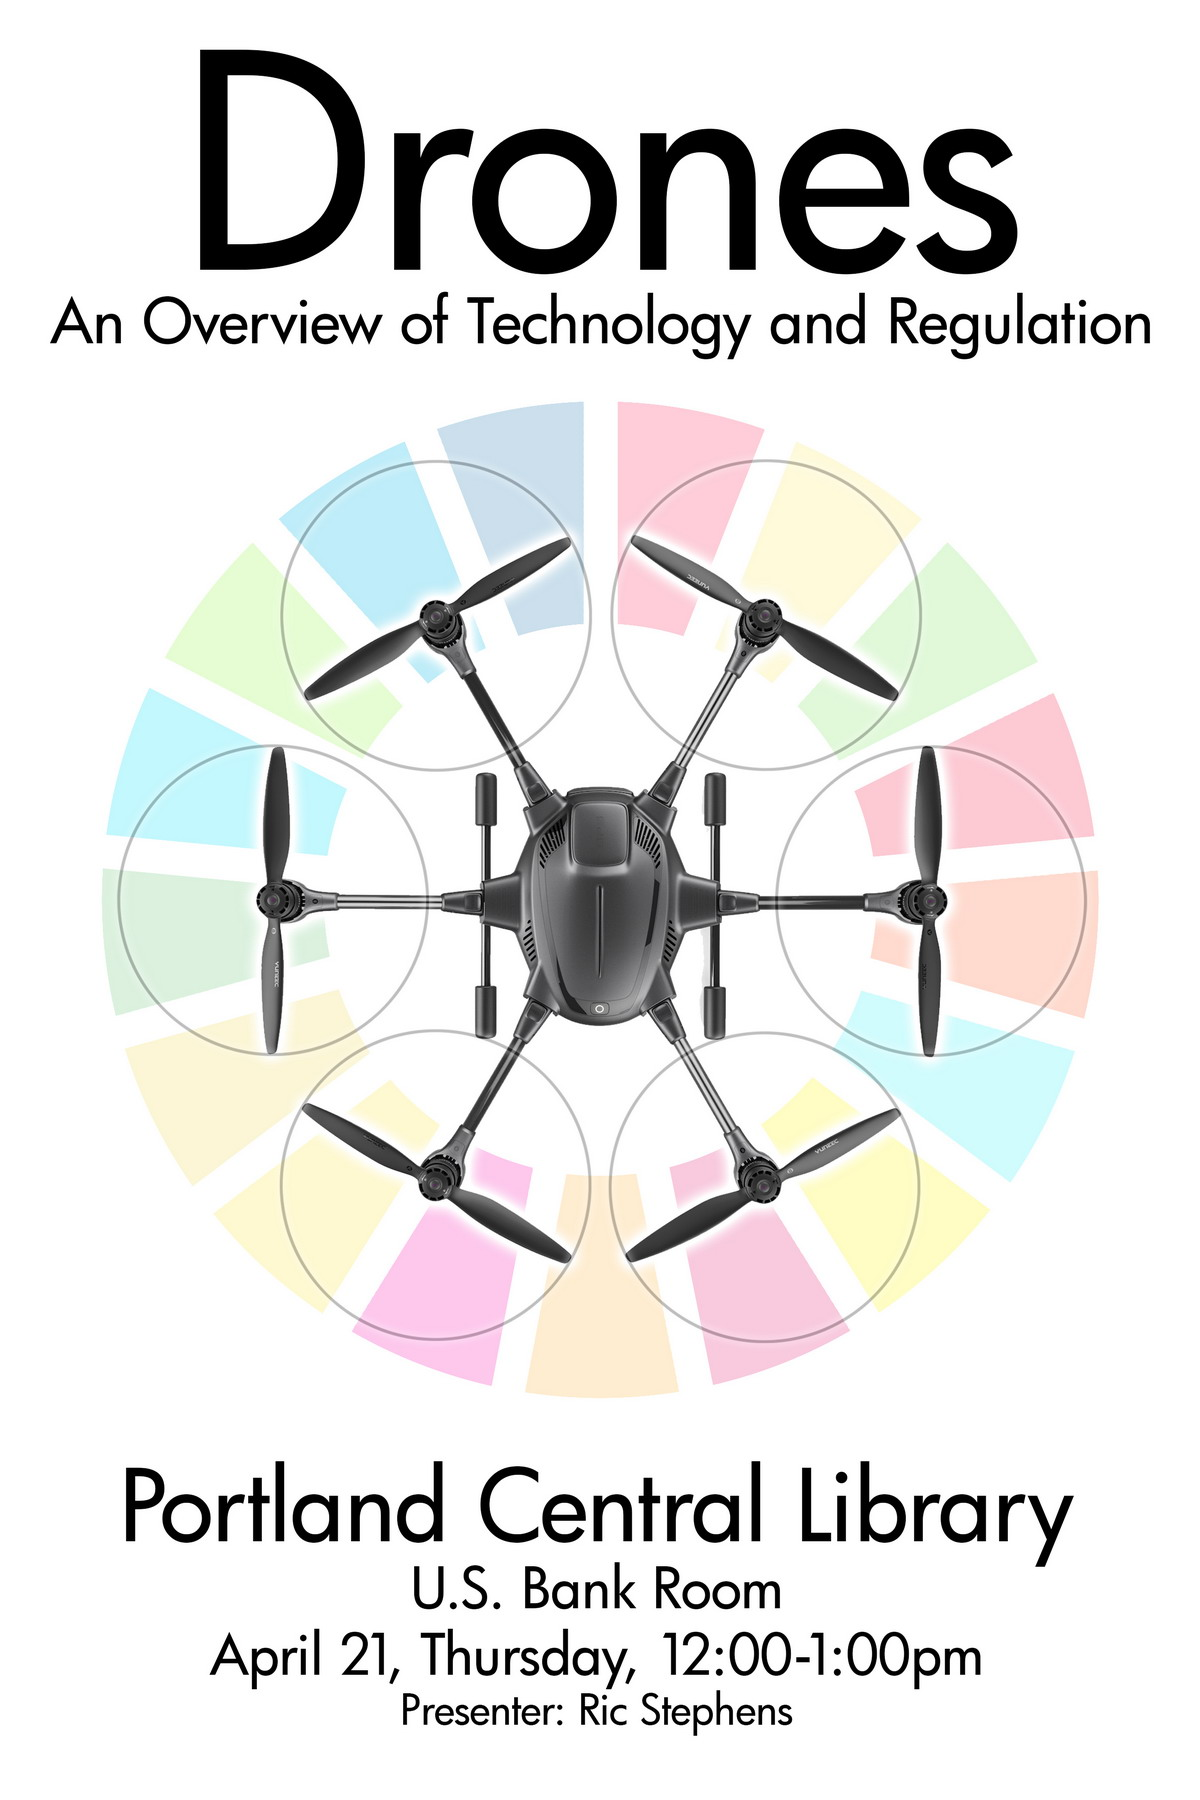 Drones Overview of Technology and Regulation